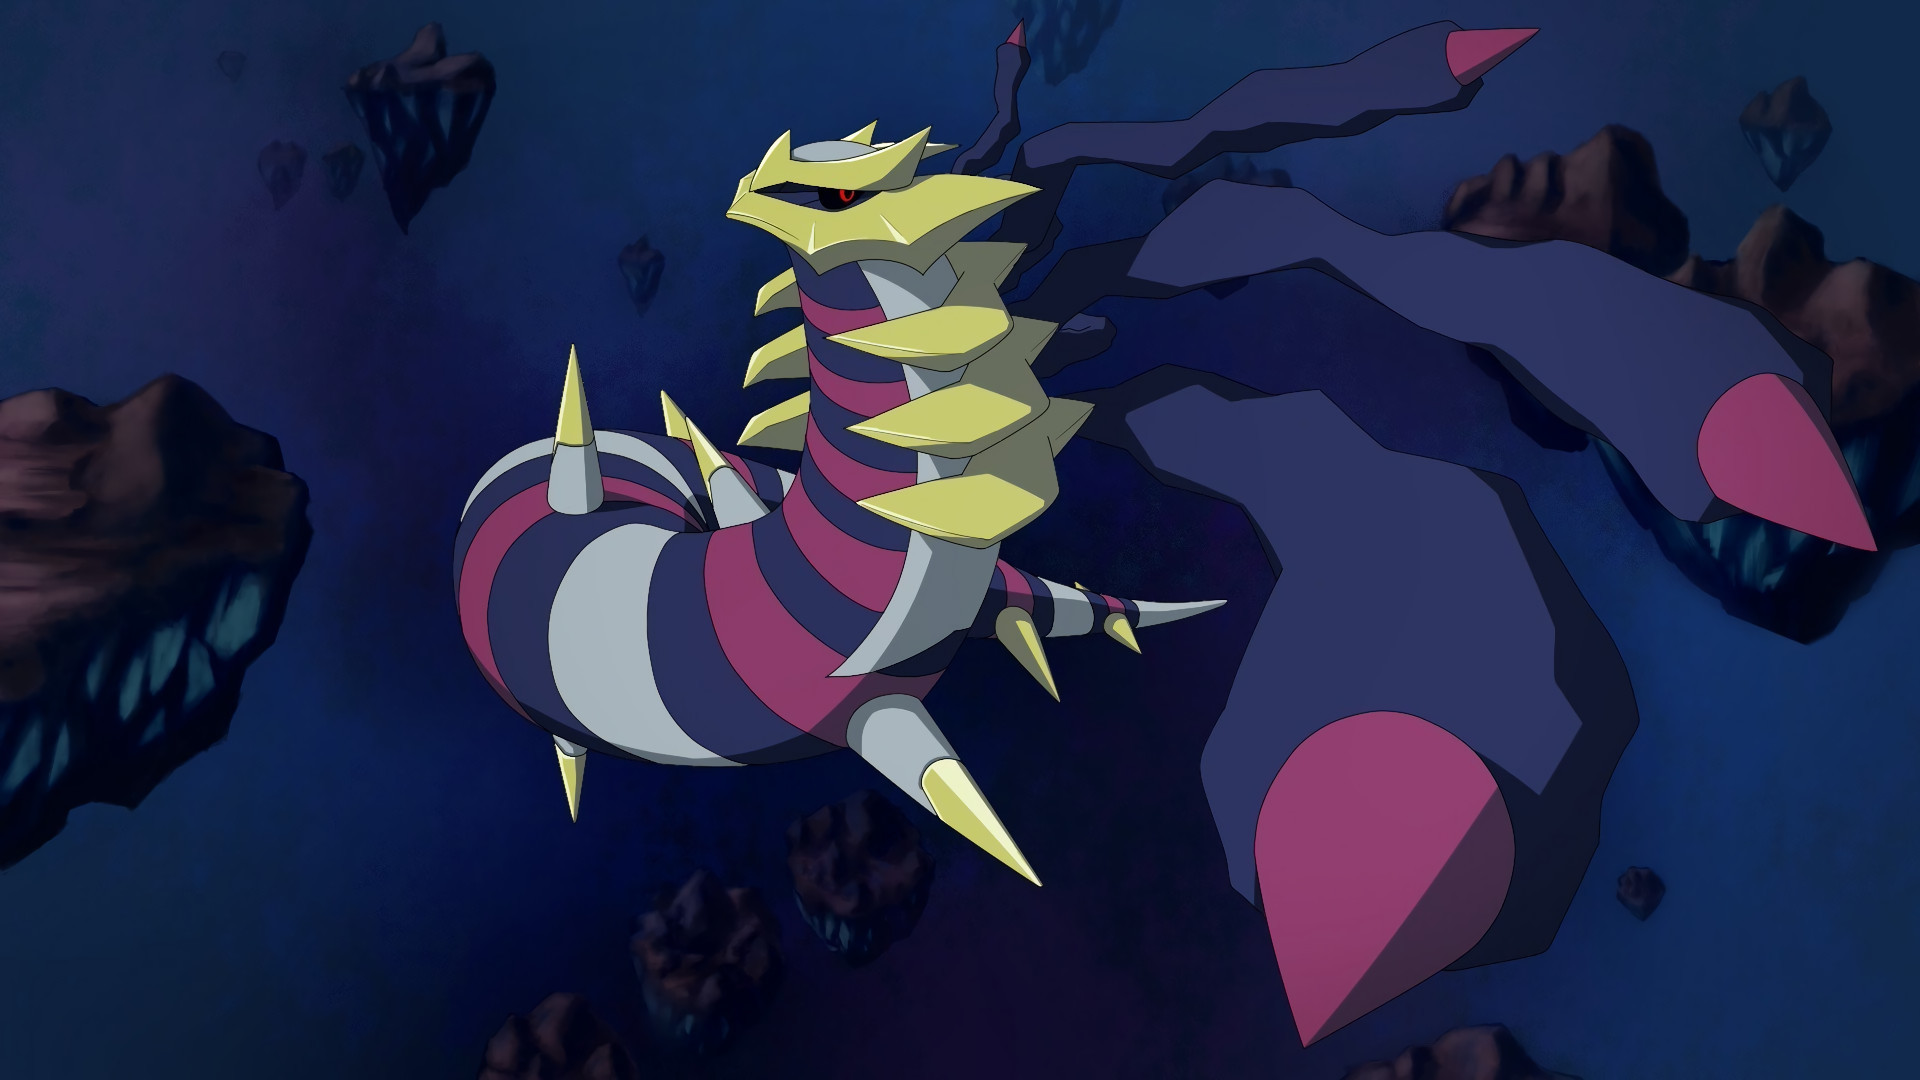 1920x1080  Video Game - Pokémon Giratina (Pokémon) Wallpaper